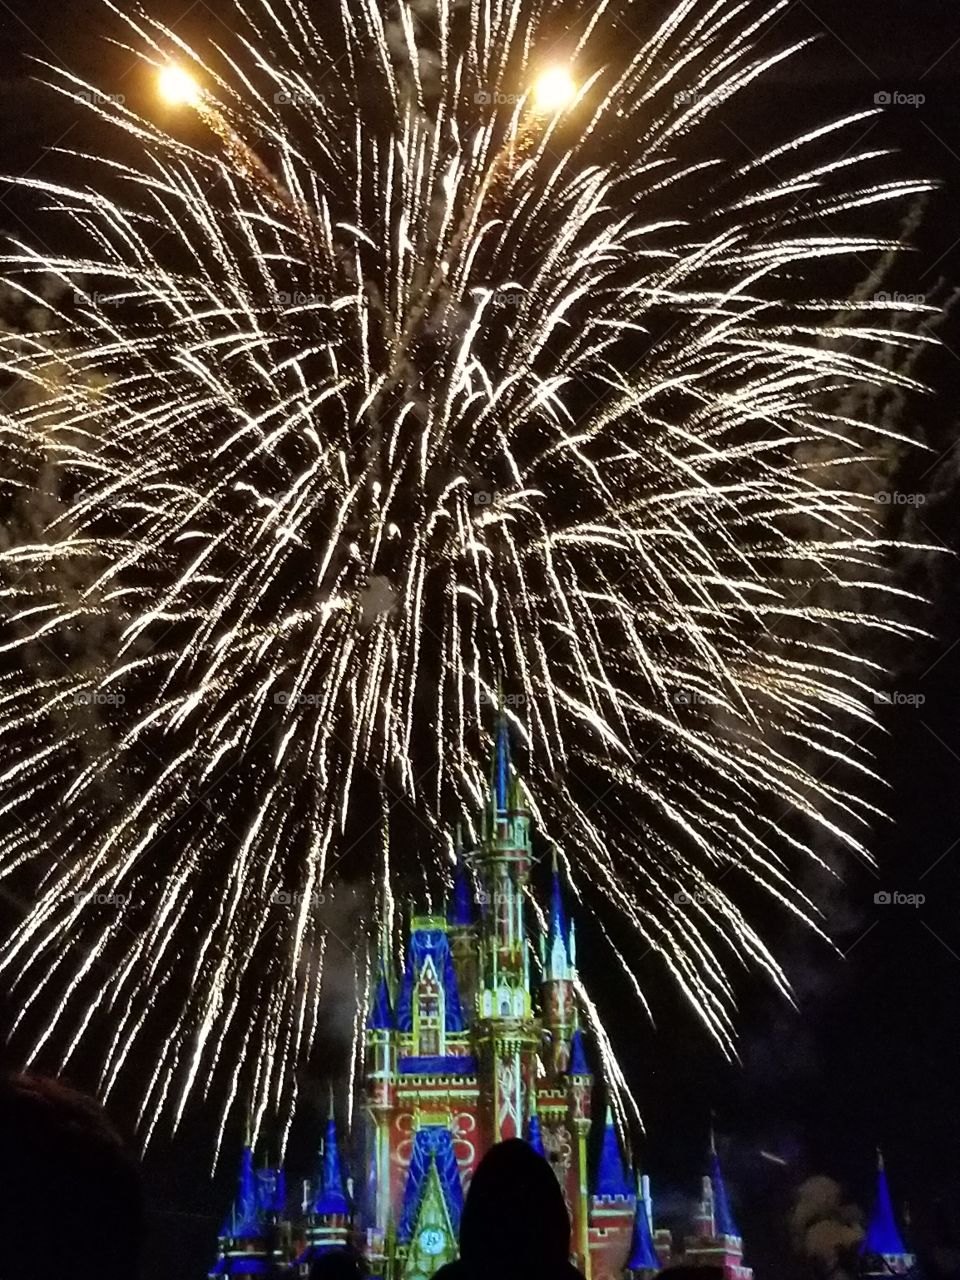 Magical fireworks picture above Magic Kingdom